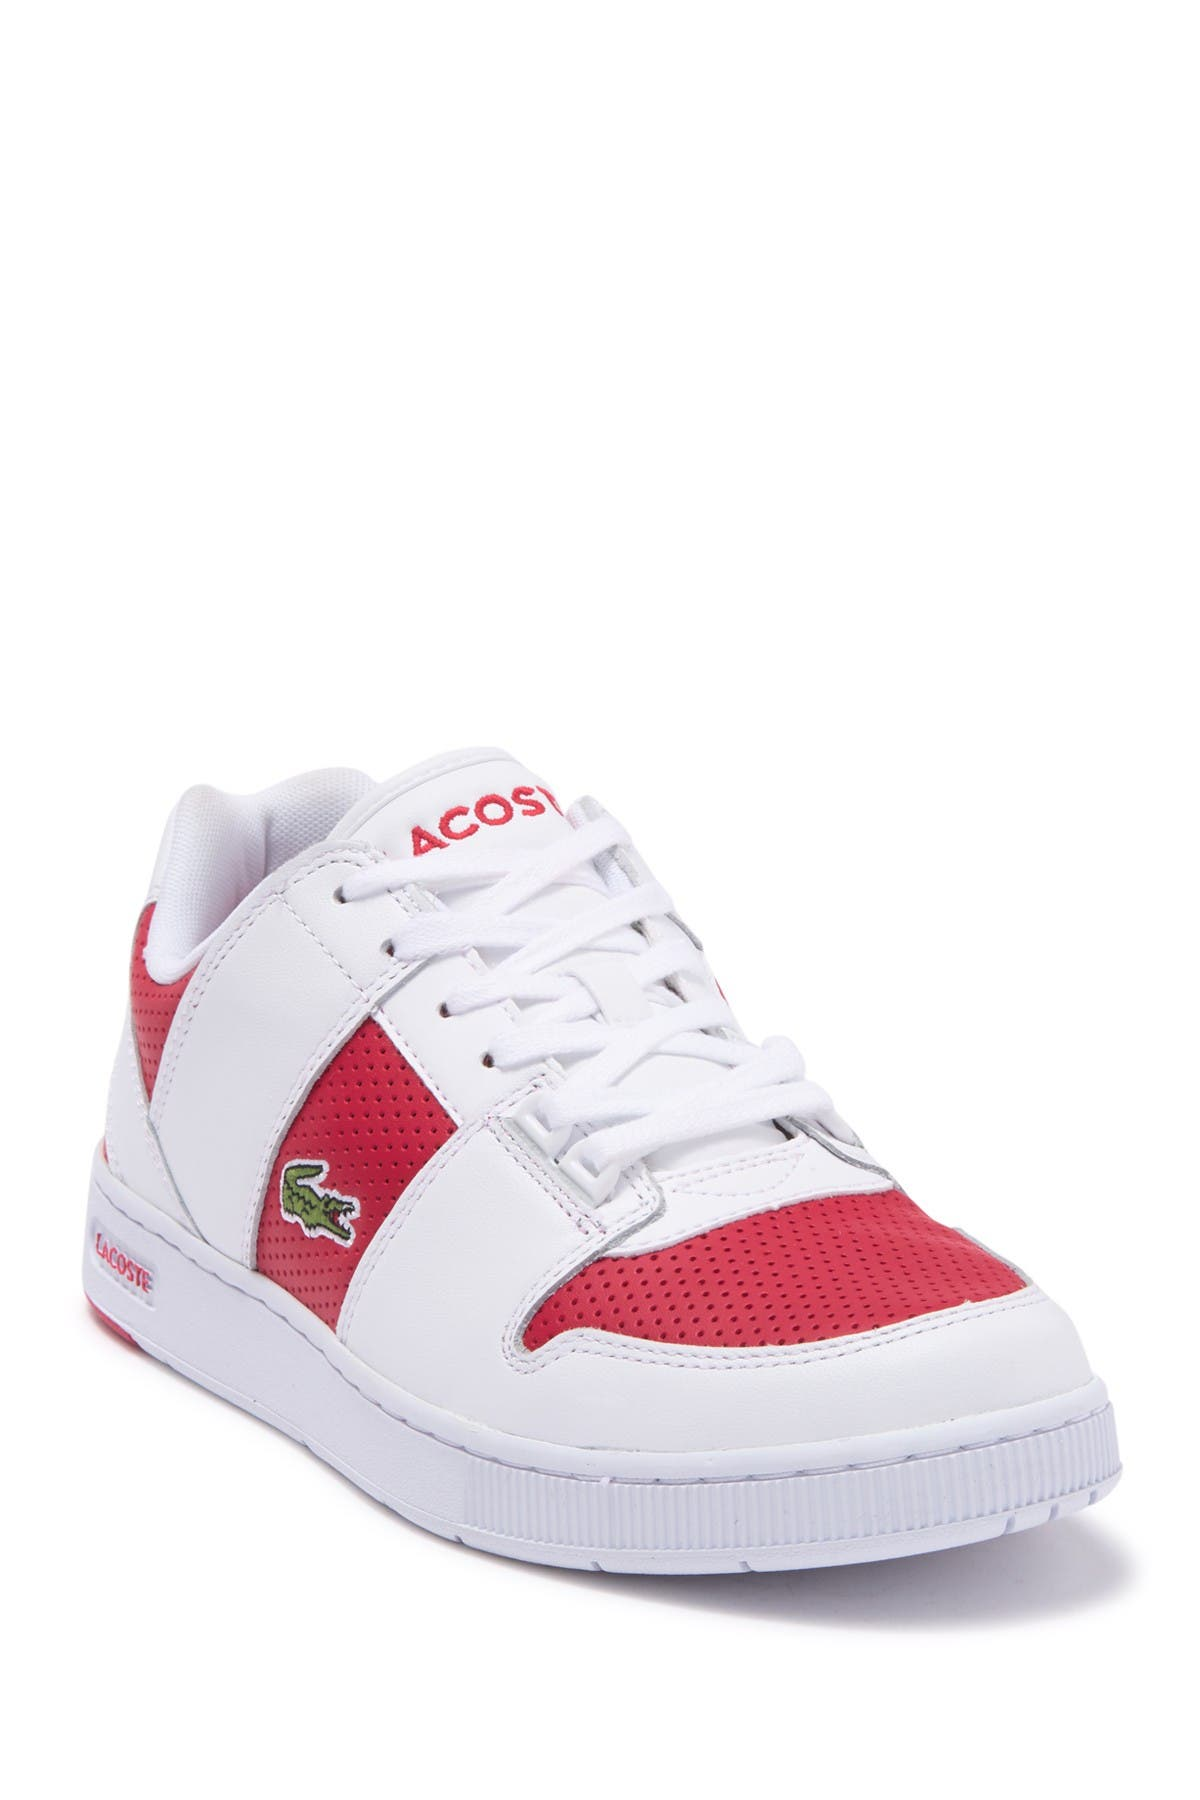 Image of Lacoste Thrill 319 Sneaker